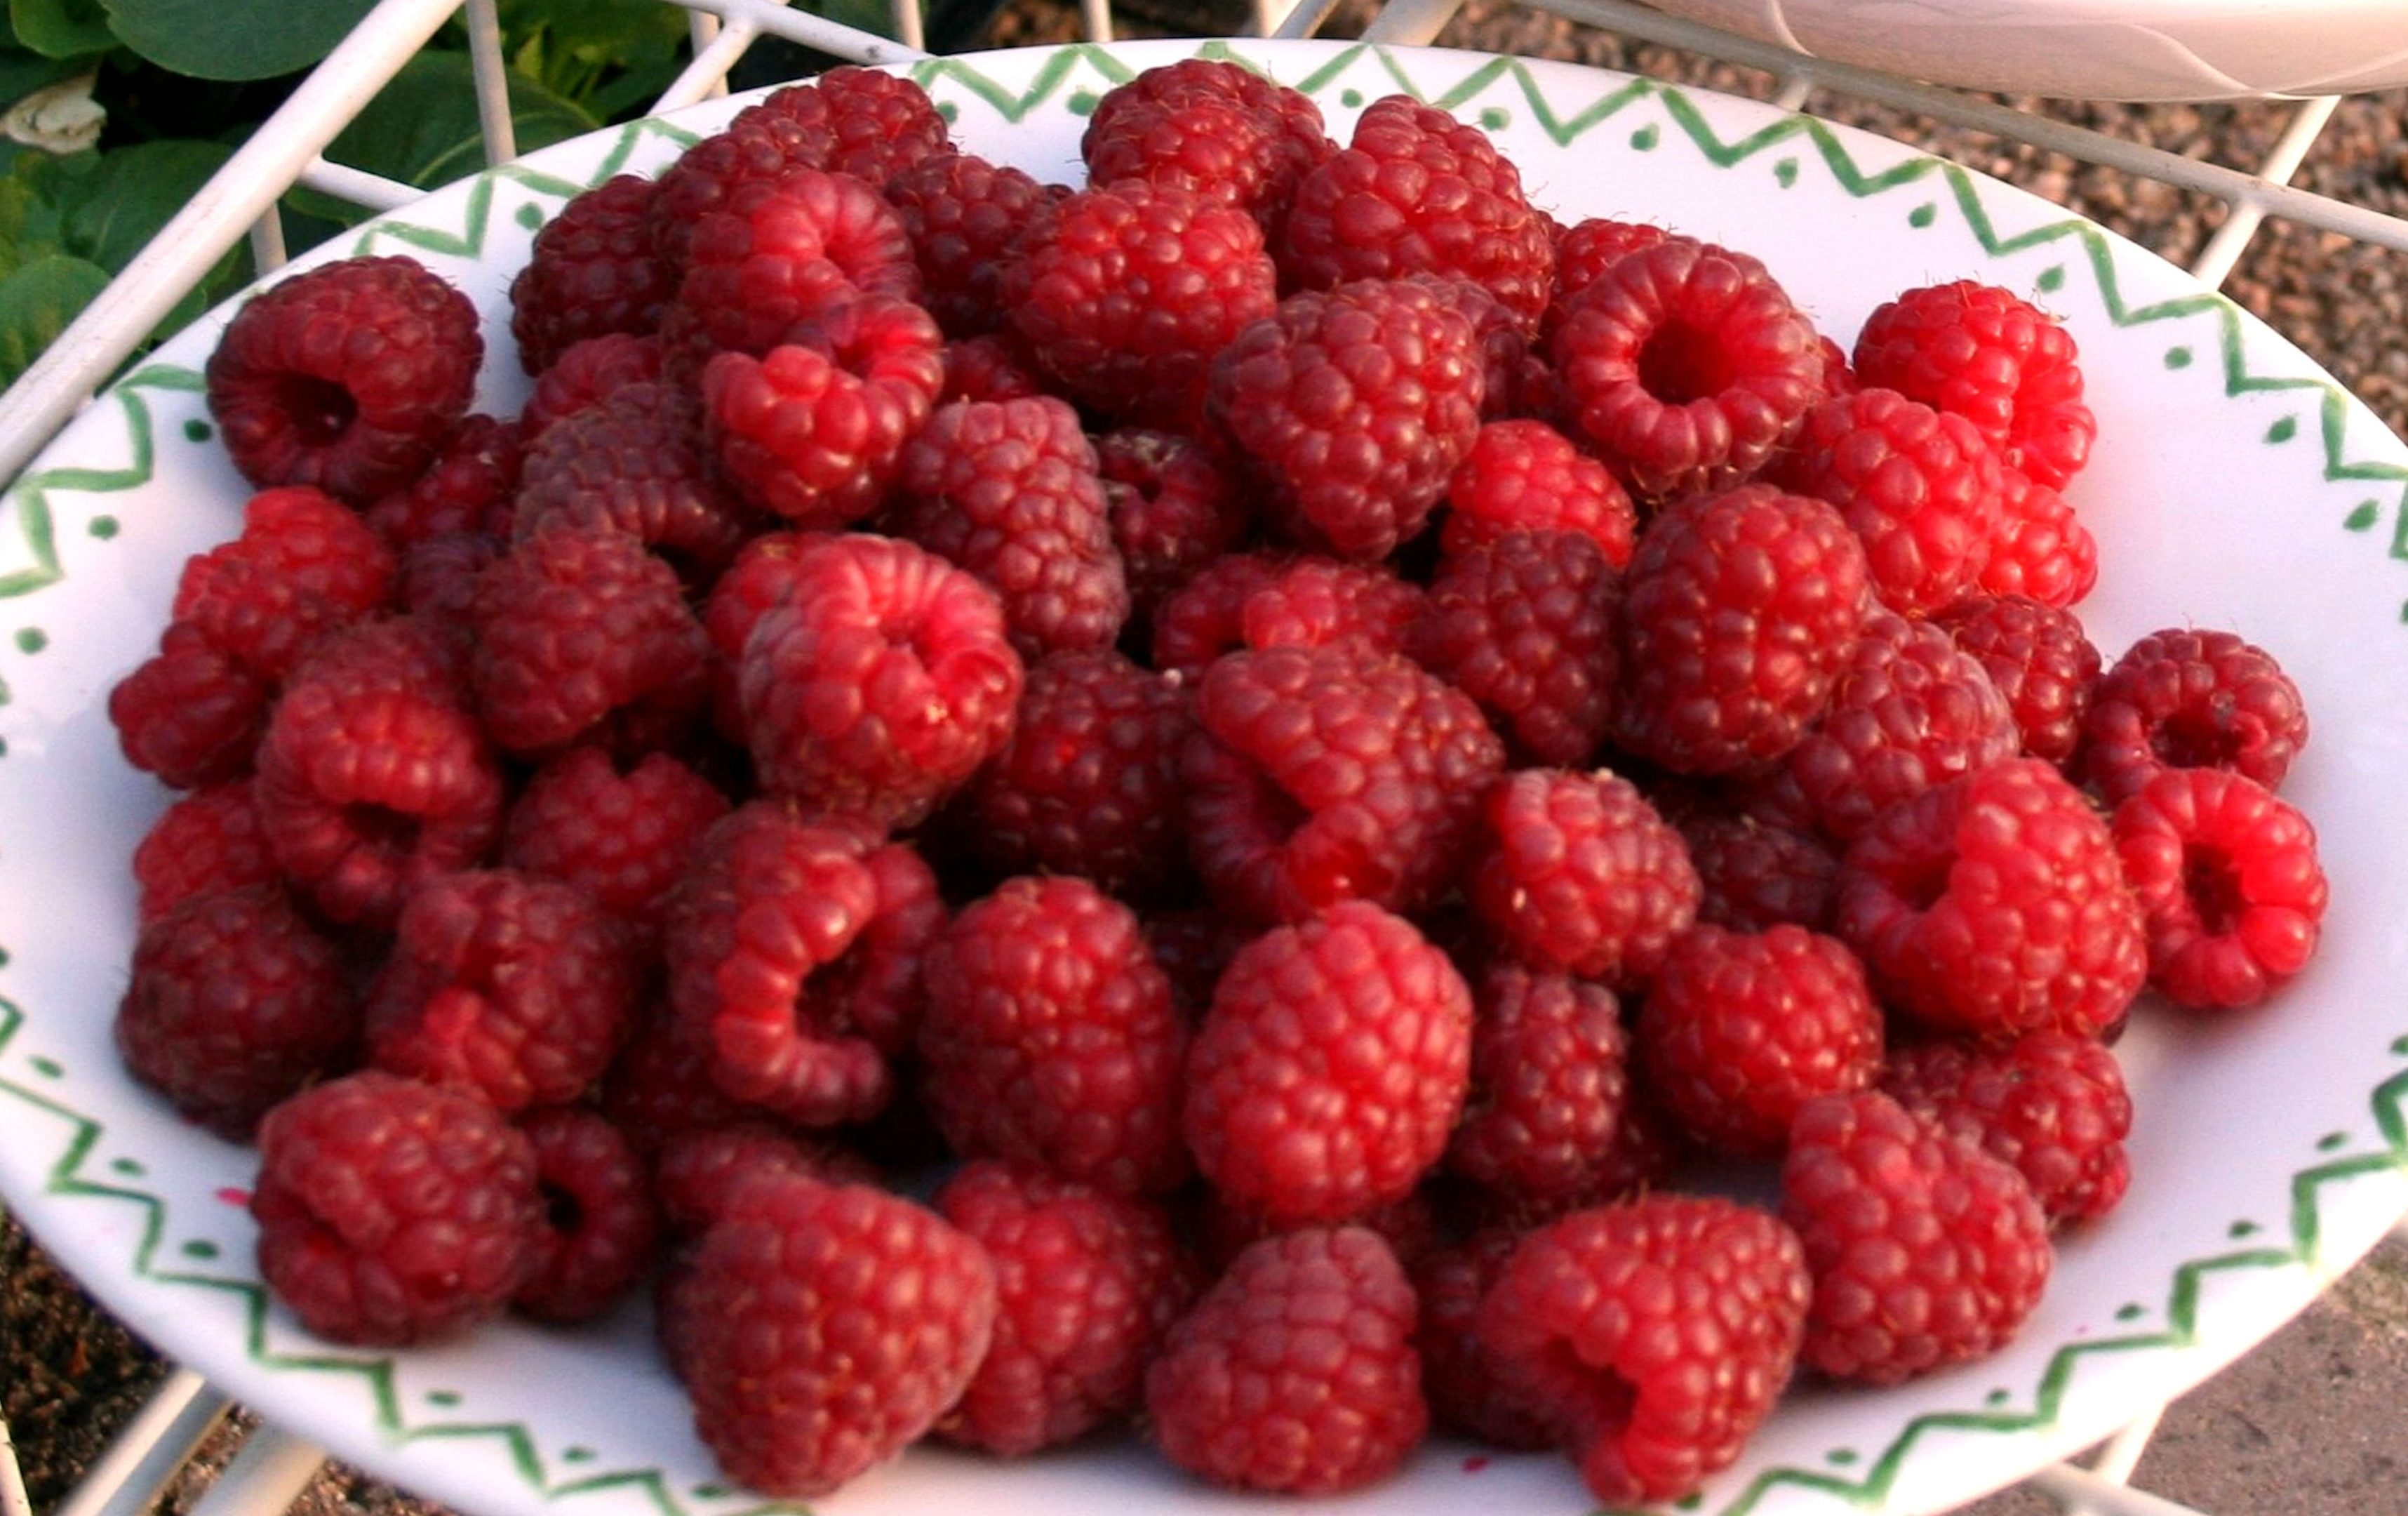 Autumn Bliss raspberries picked in October